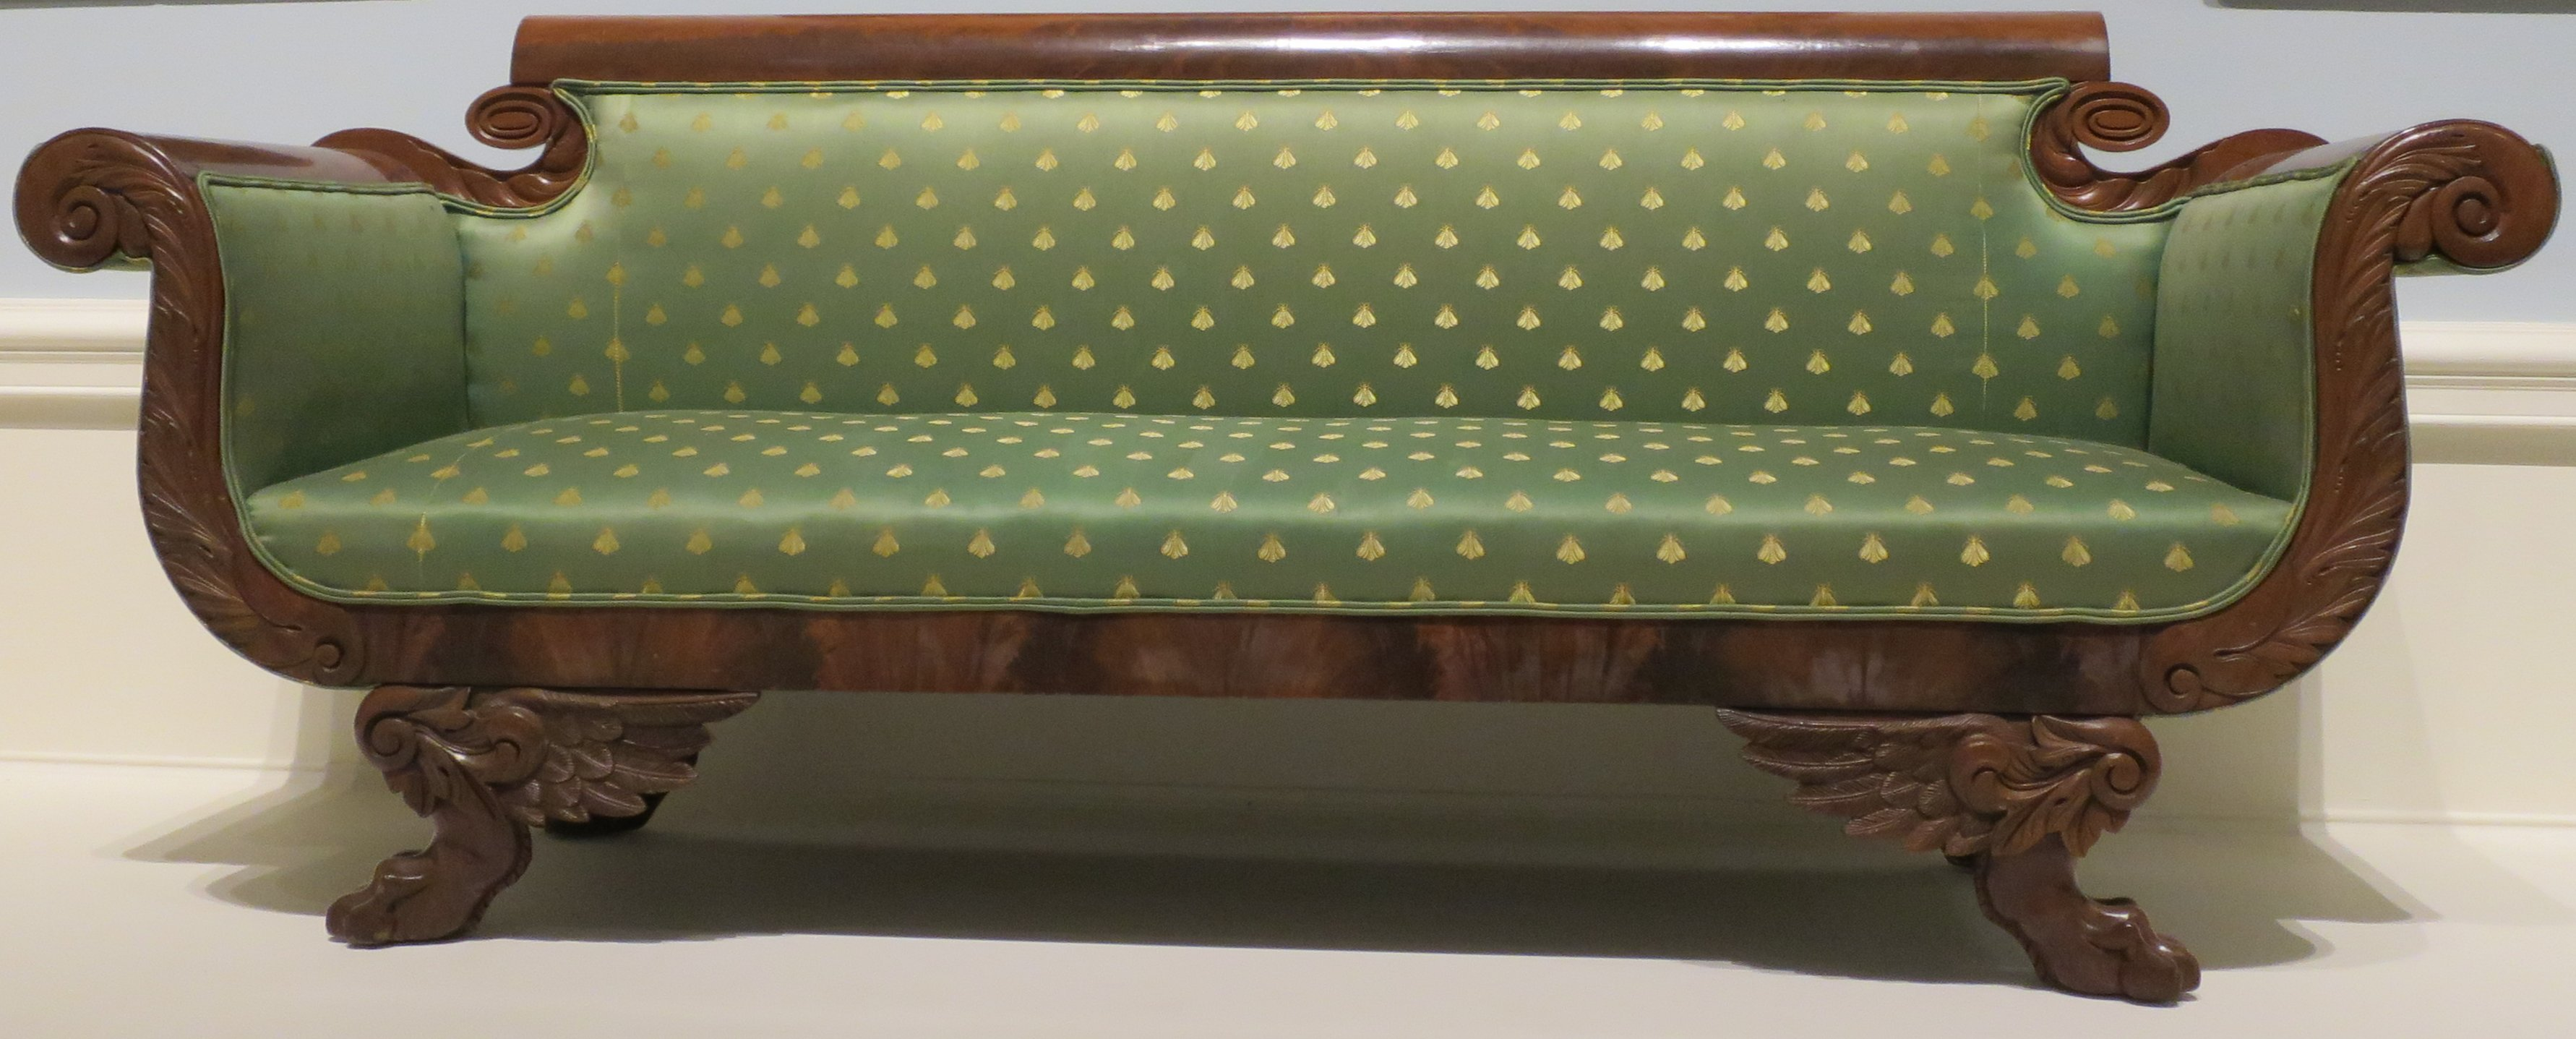 empire furniture sofa dfs sofas nl file american style c 1820 30 wood mahogany veneer and brocade upholstery dayton art institute jpg